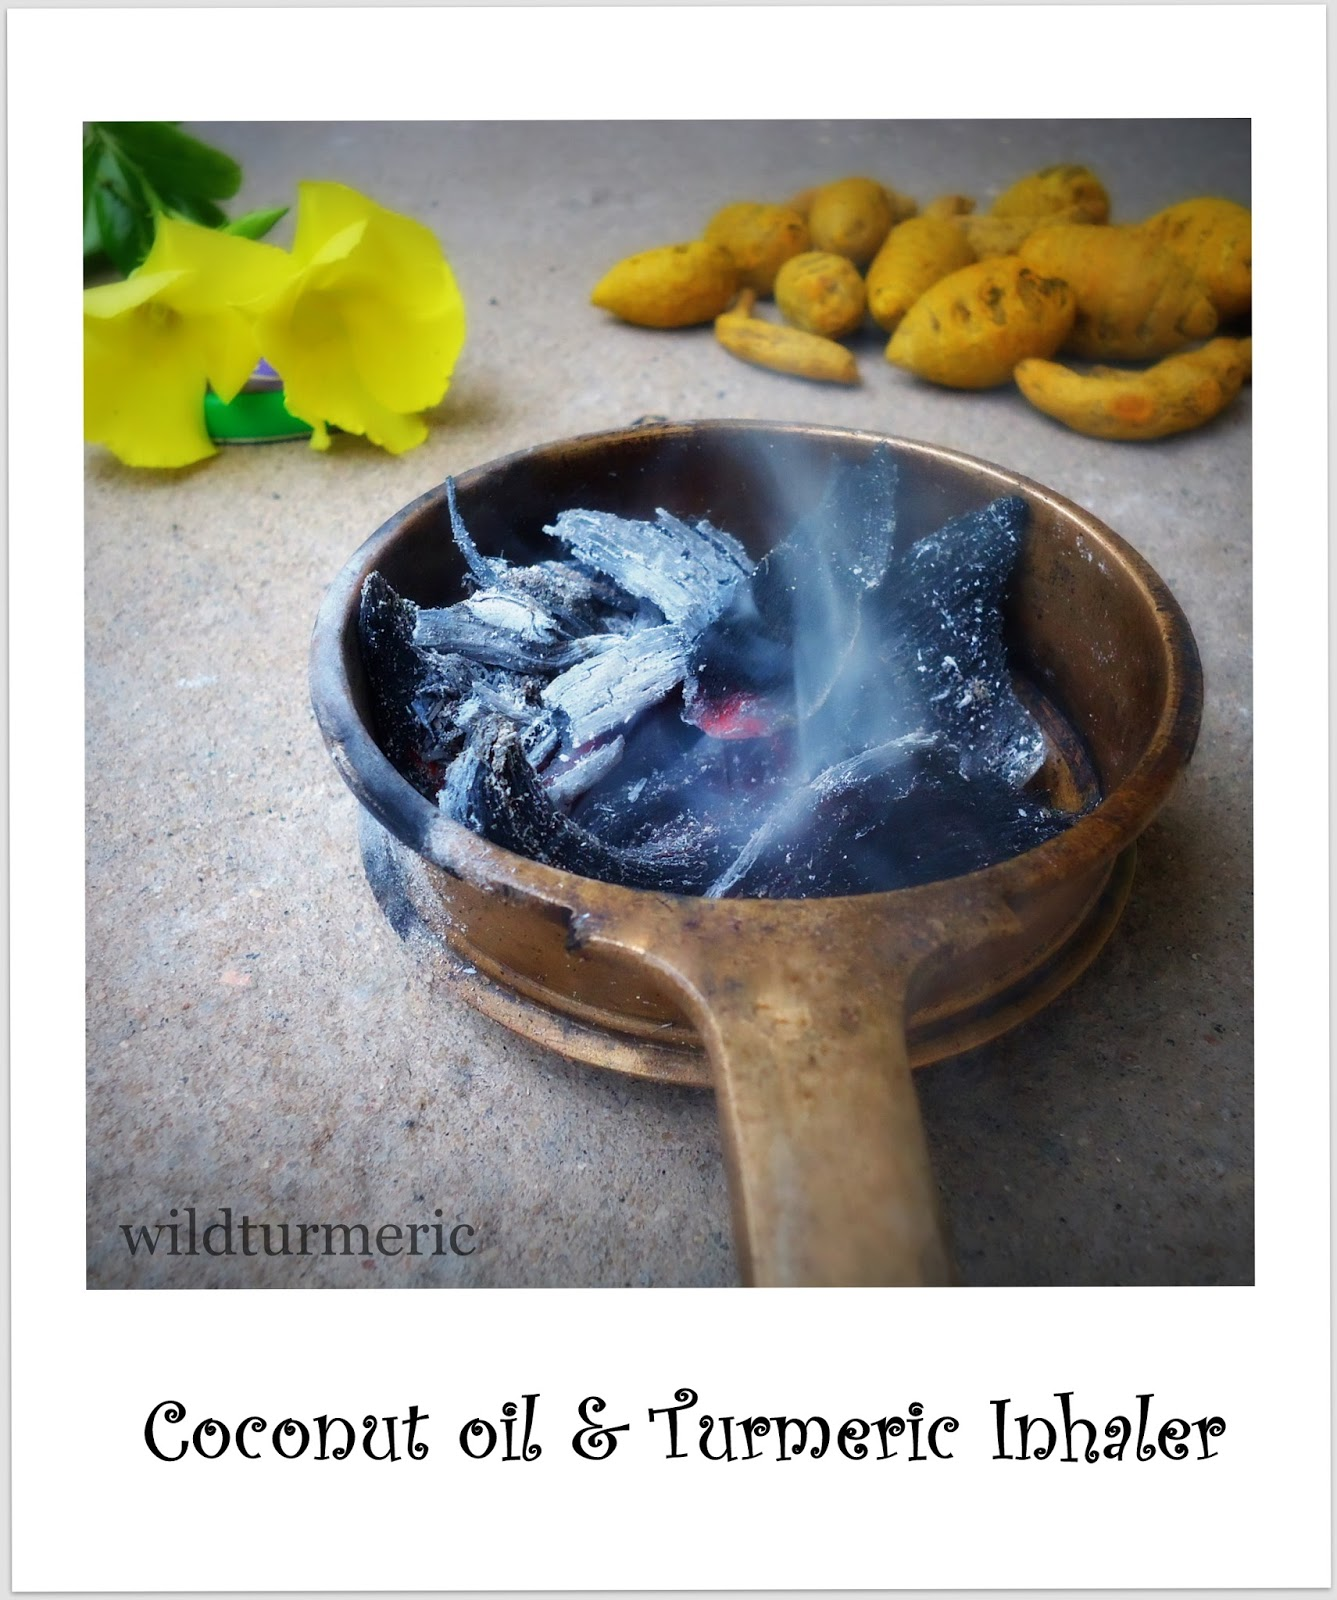 Homemade Natural Turmeric and Coconut Oil Inhaler